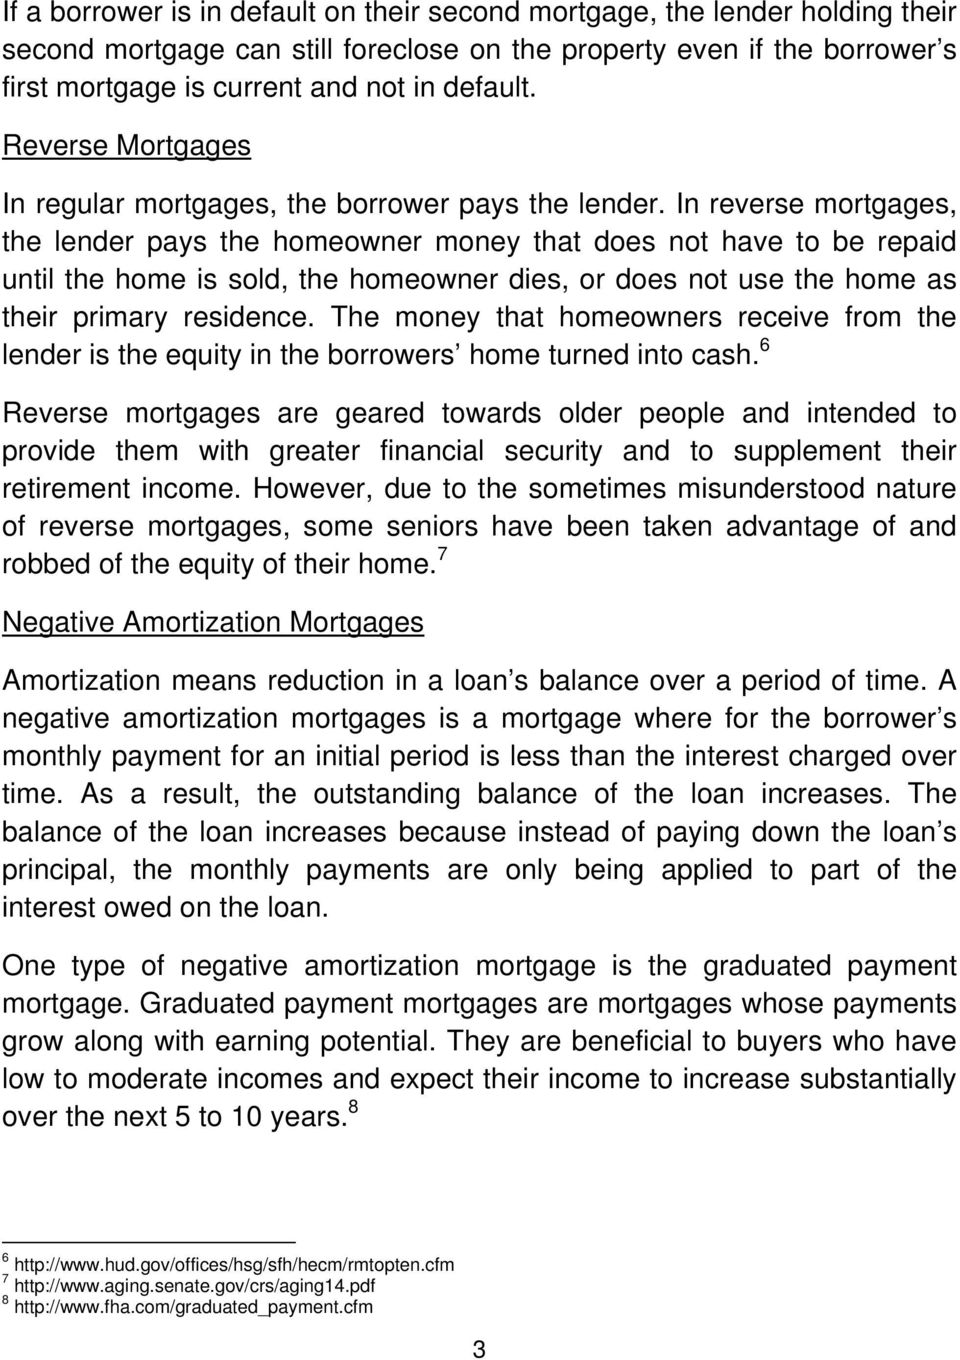 In reverse mortgages, the lender pays the homeowner money that does not have to be repaid until the home is sold, the homeowner dies, or does not use the home as their primary residence.